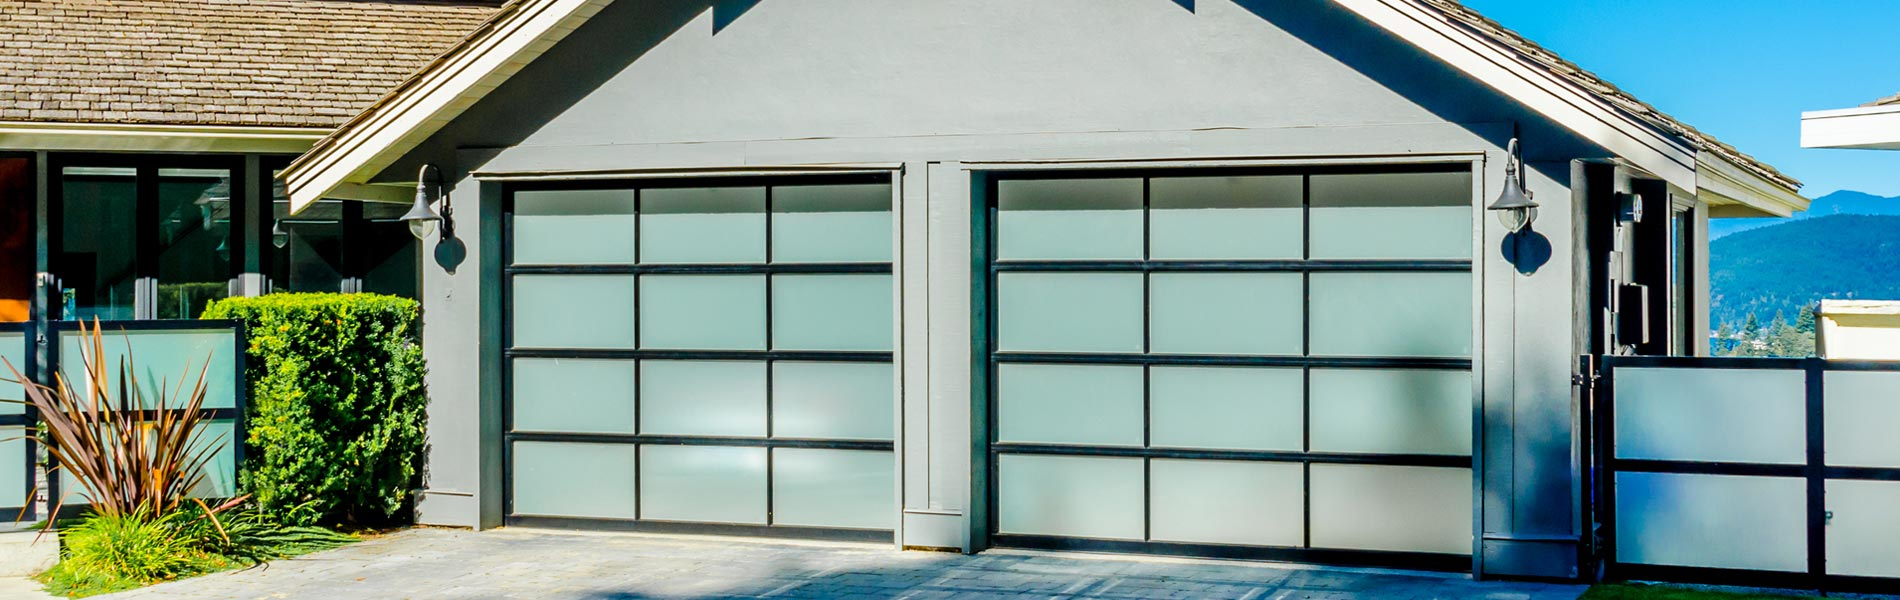 Capitol Garage Door Service San Francisco, CA 415-599-0289